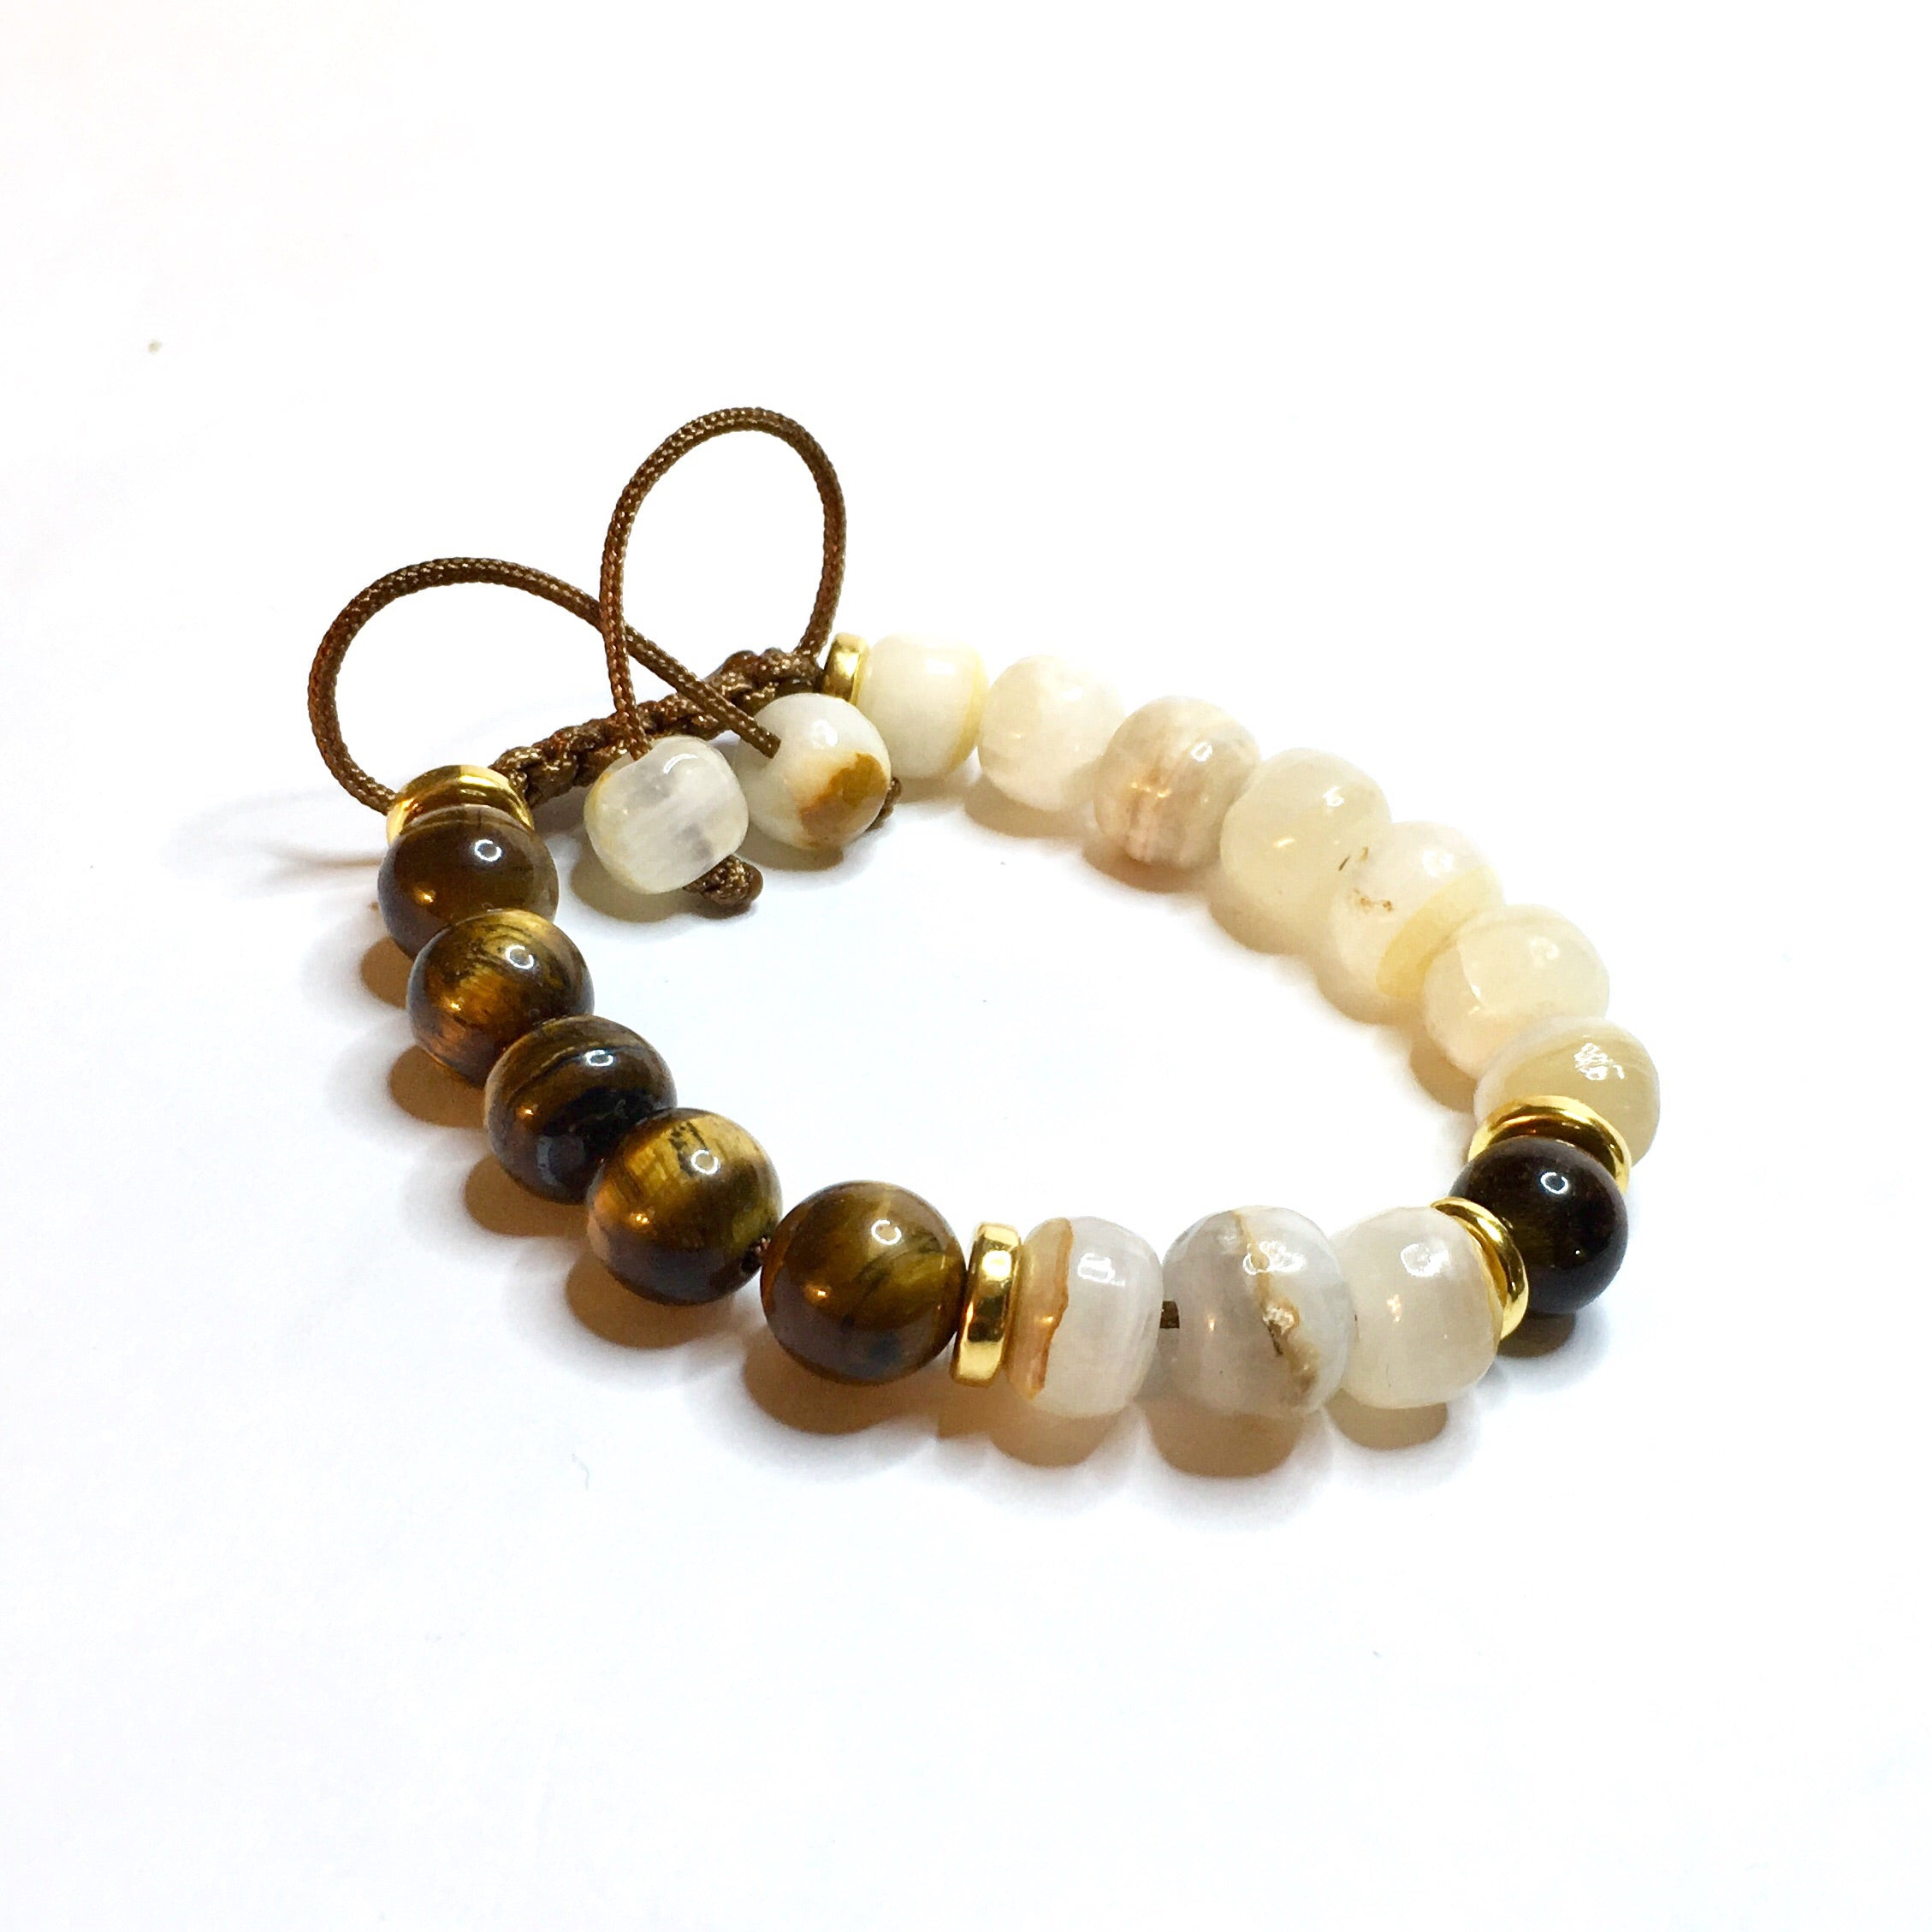 THE NATURAL ONYX COLLECTION Featuring Multiple Gemstones - SIMPLY SOFIA